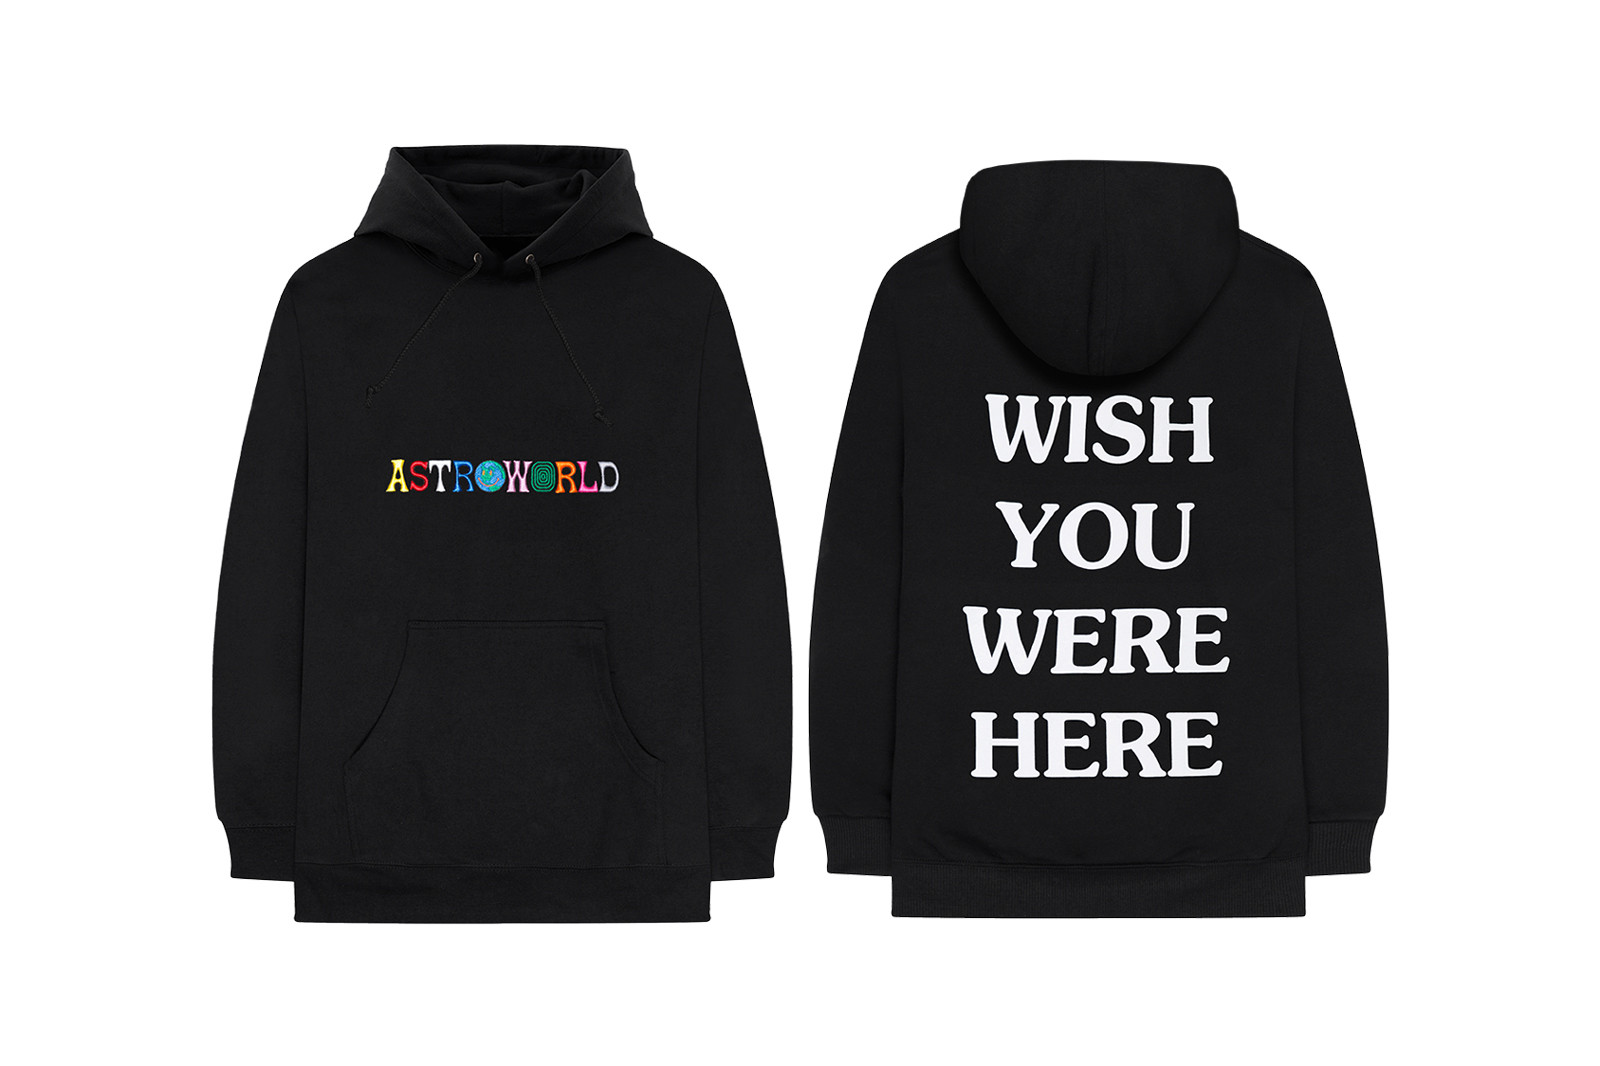 https_%2F%2Fhypebeast.com%2Fimage%2F2018%2F08%2Ftravis-scott-astroworld-merch-day-1-2-1.jpg